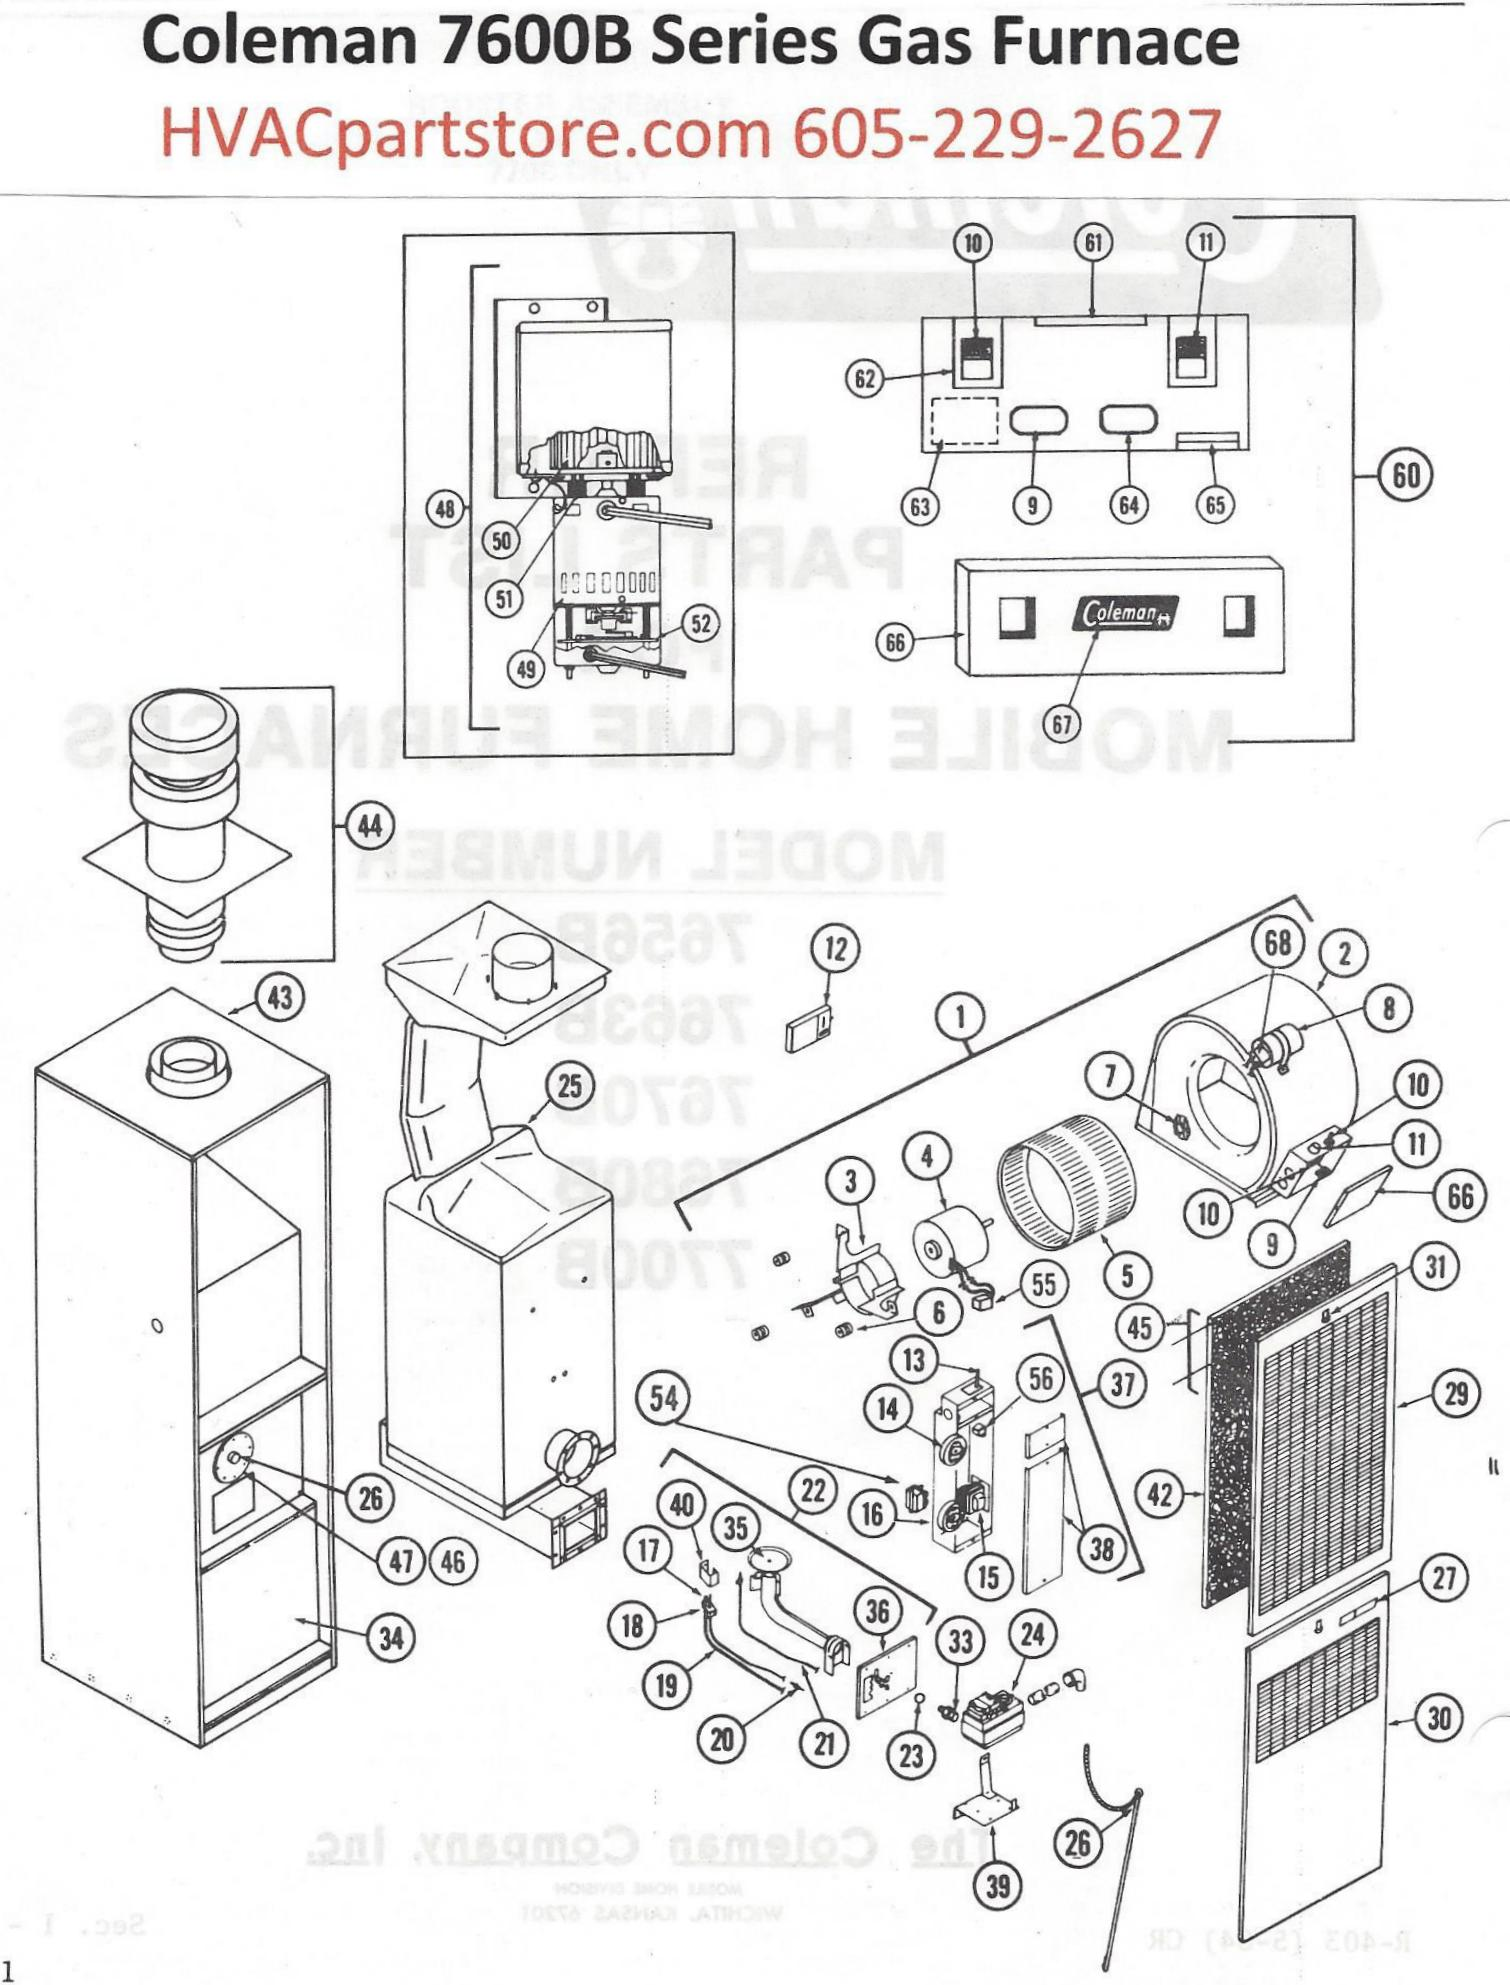 7680b856 coleman gas furnace parts hvacpartstore rh hvacpartstore myshopify com coleman mobile home gas furnace wiring diagram Furnace Blower Wiring Diagram